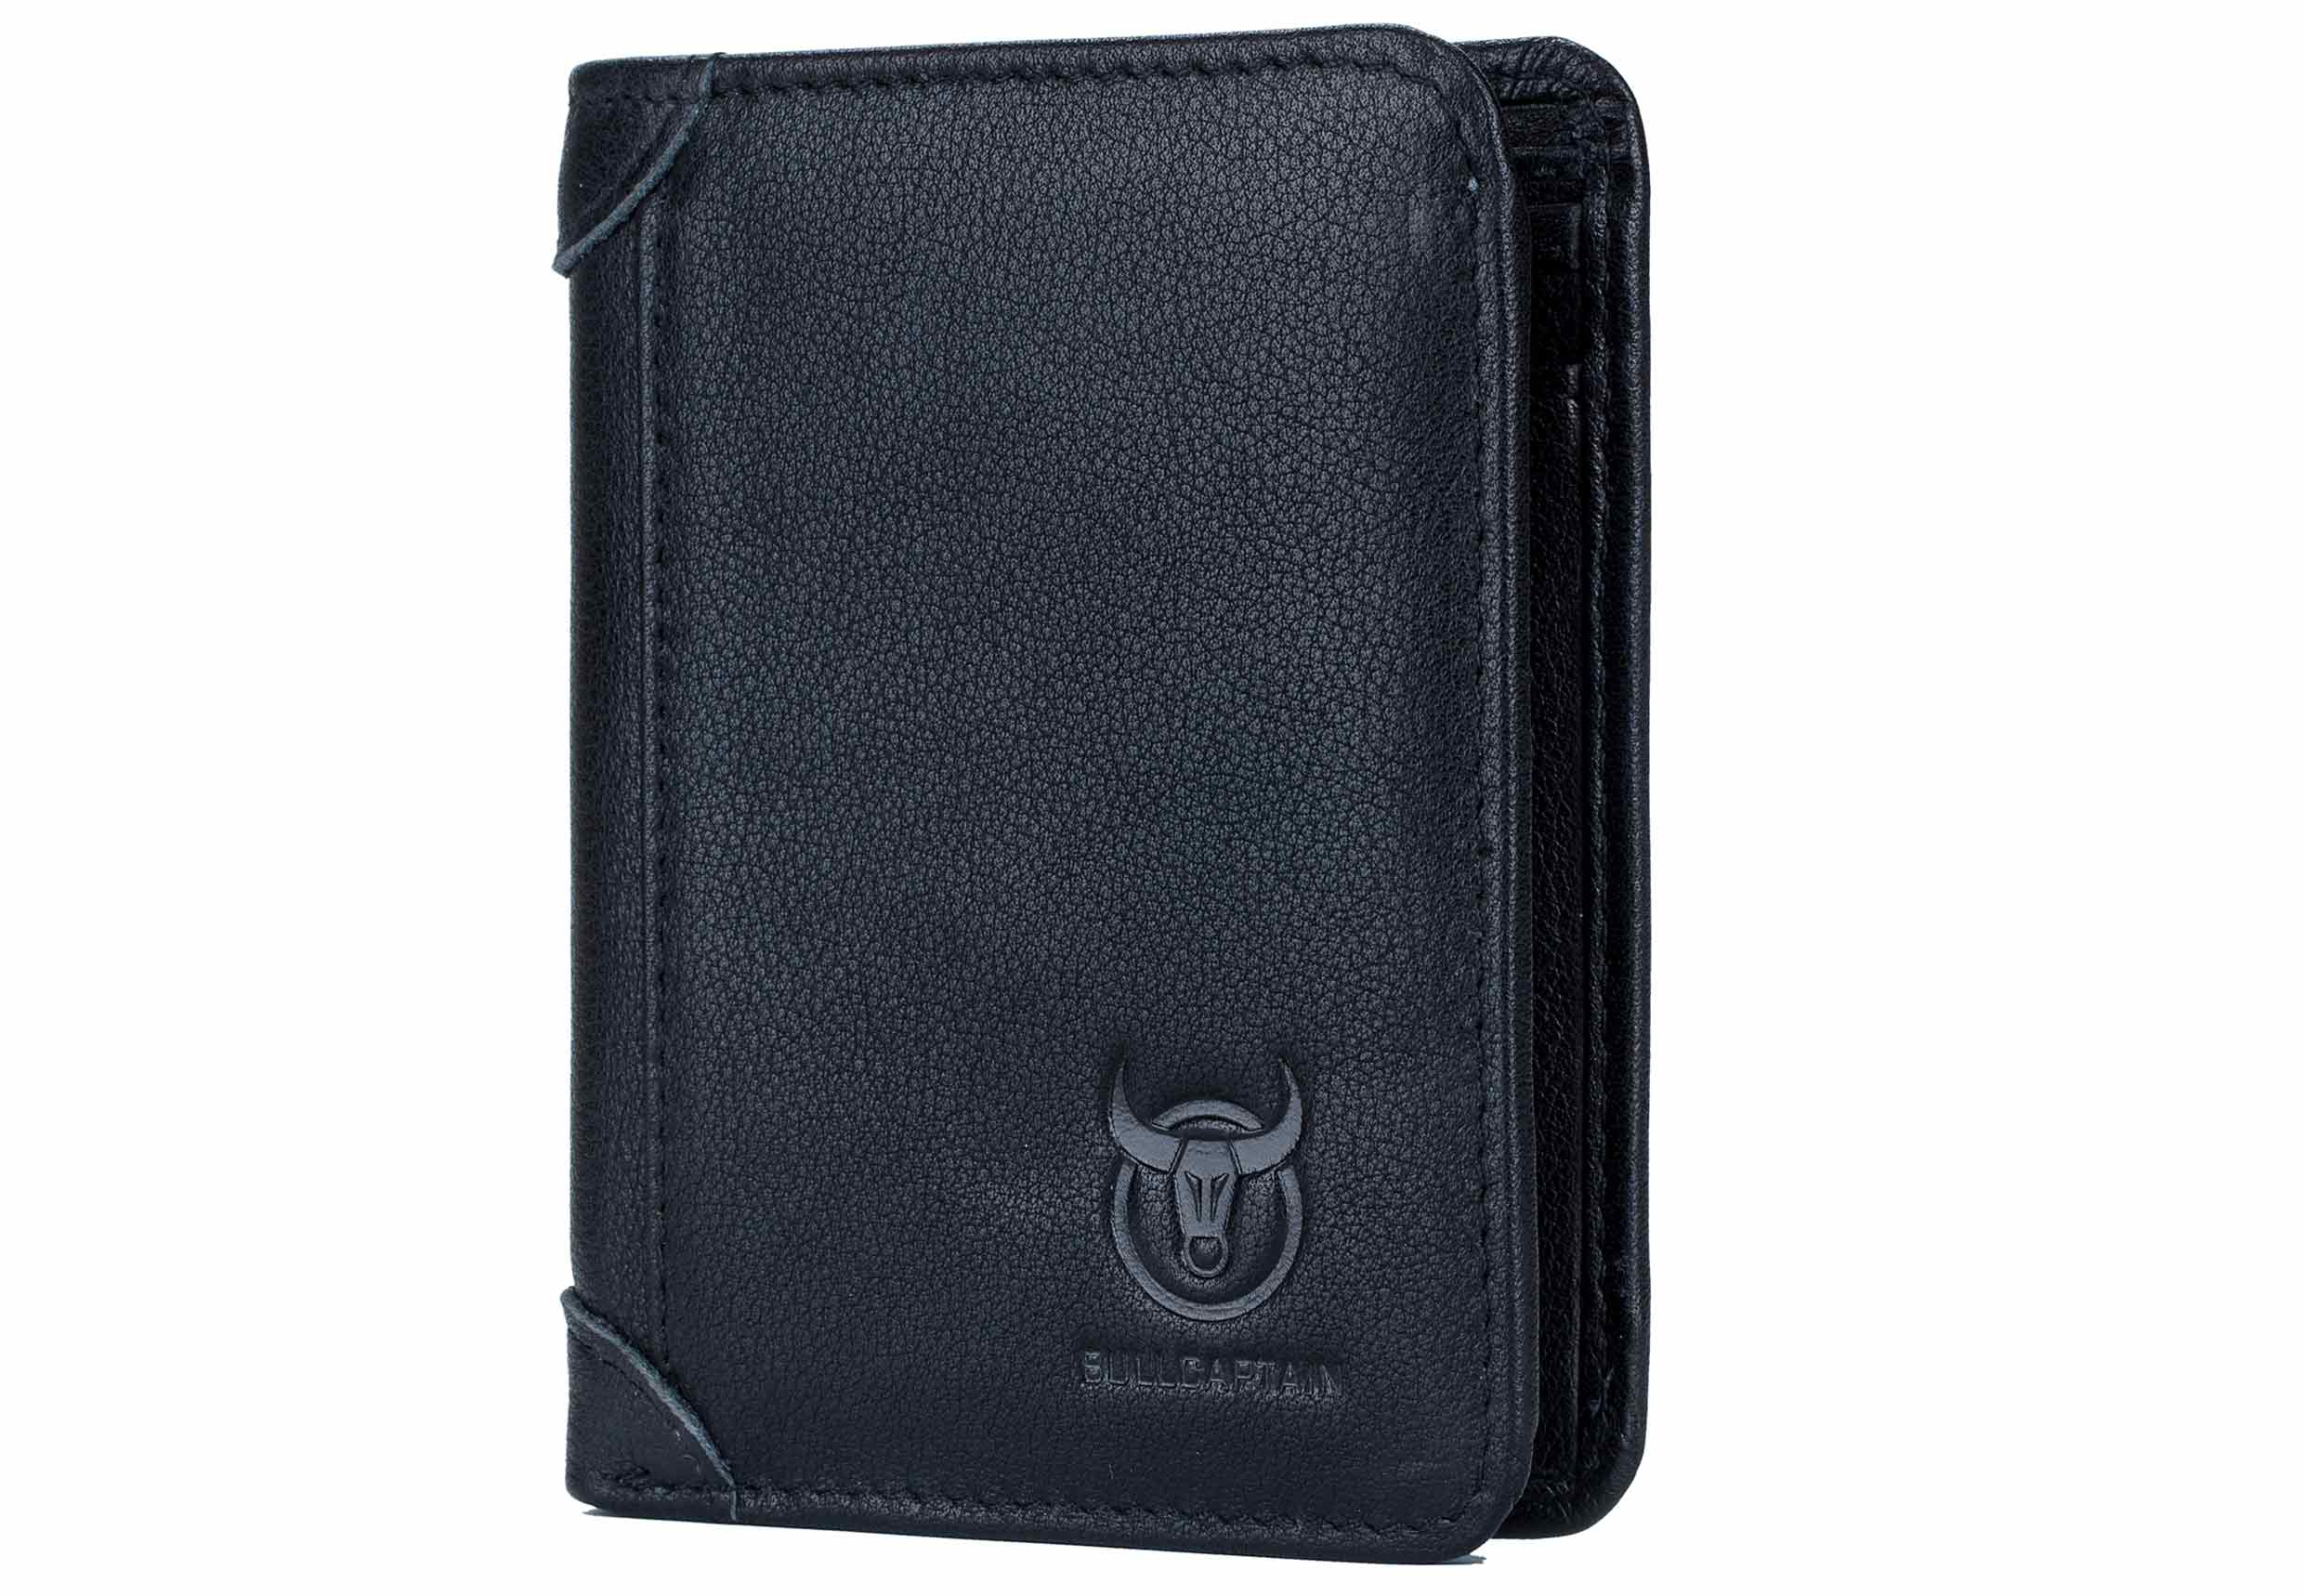 BULLCAPTAIN LEATHER BIFLOD RFID BLOCKING MEN TRIBOLD WALLET - 031